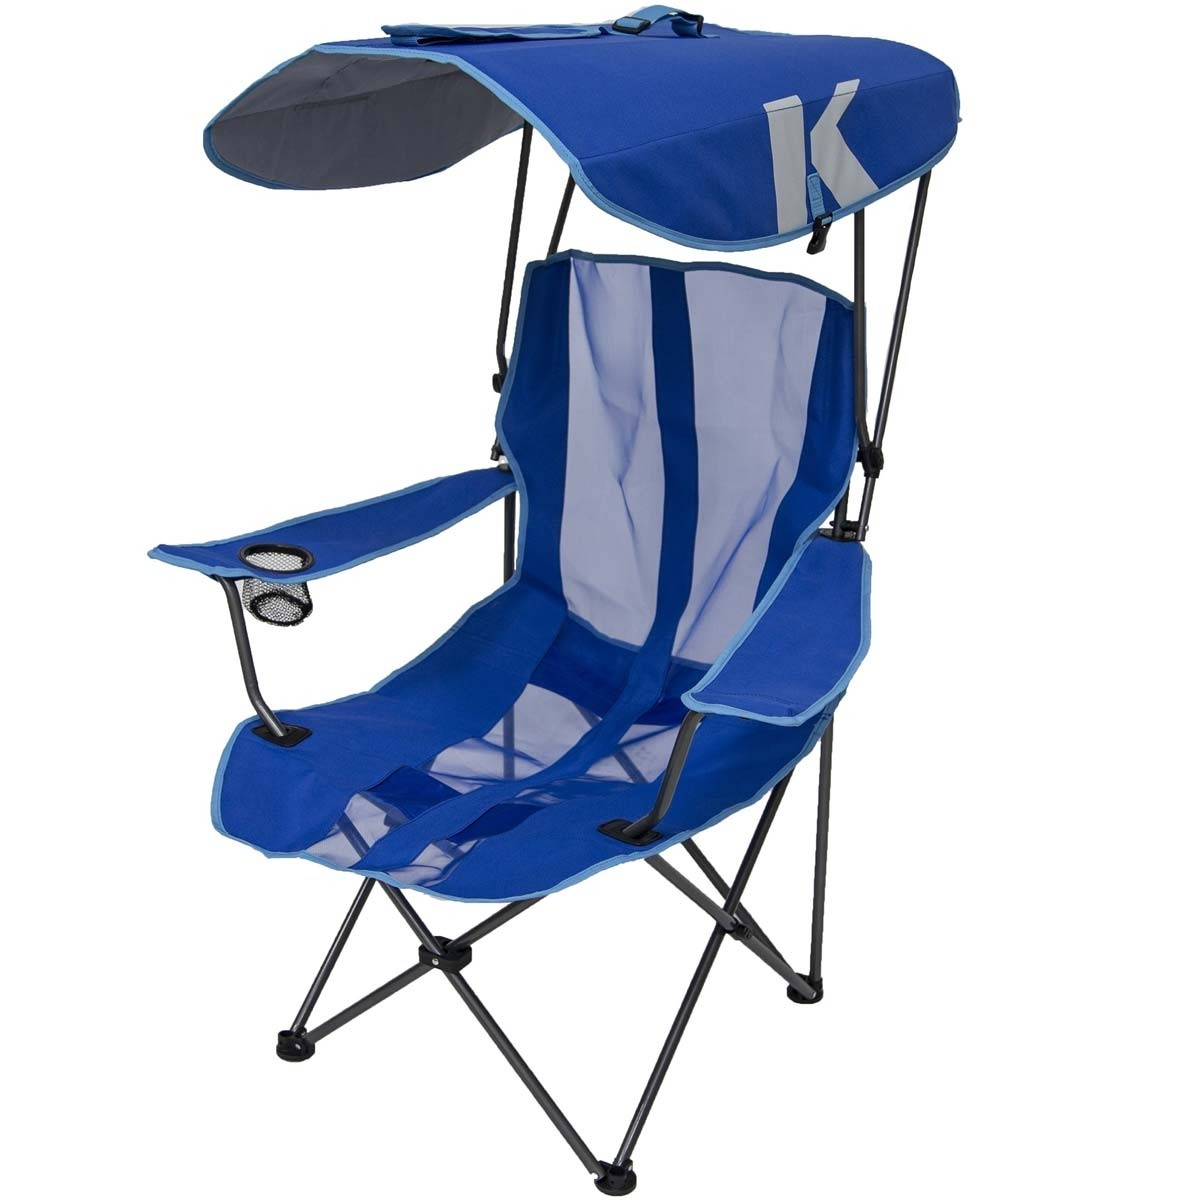 Fold Up Chair With Canopy Kelsyus Folding Chair With Shade Canopy